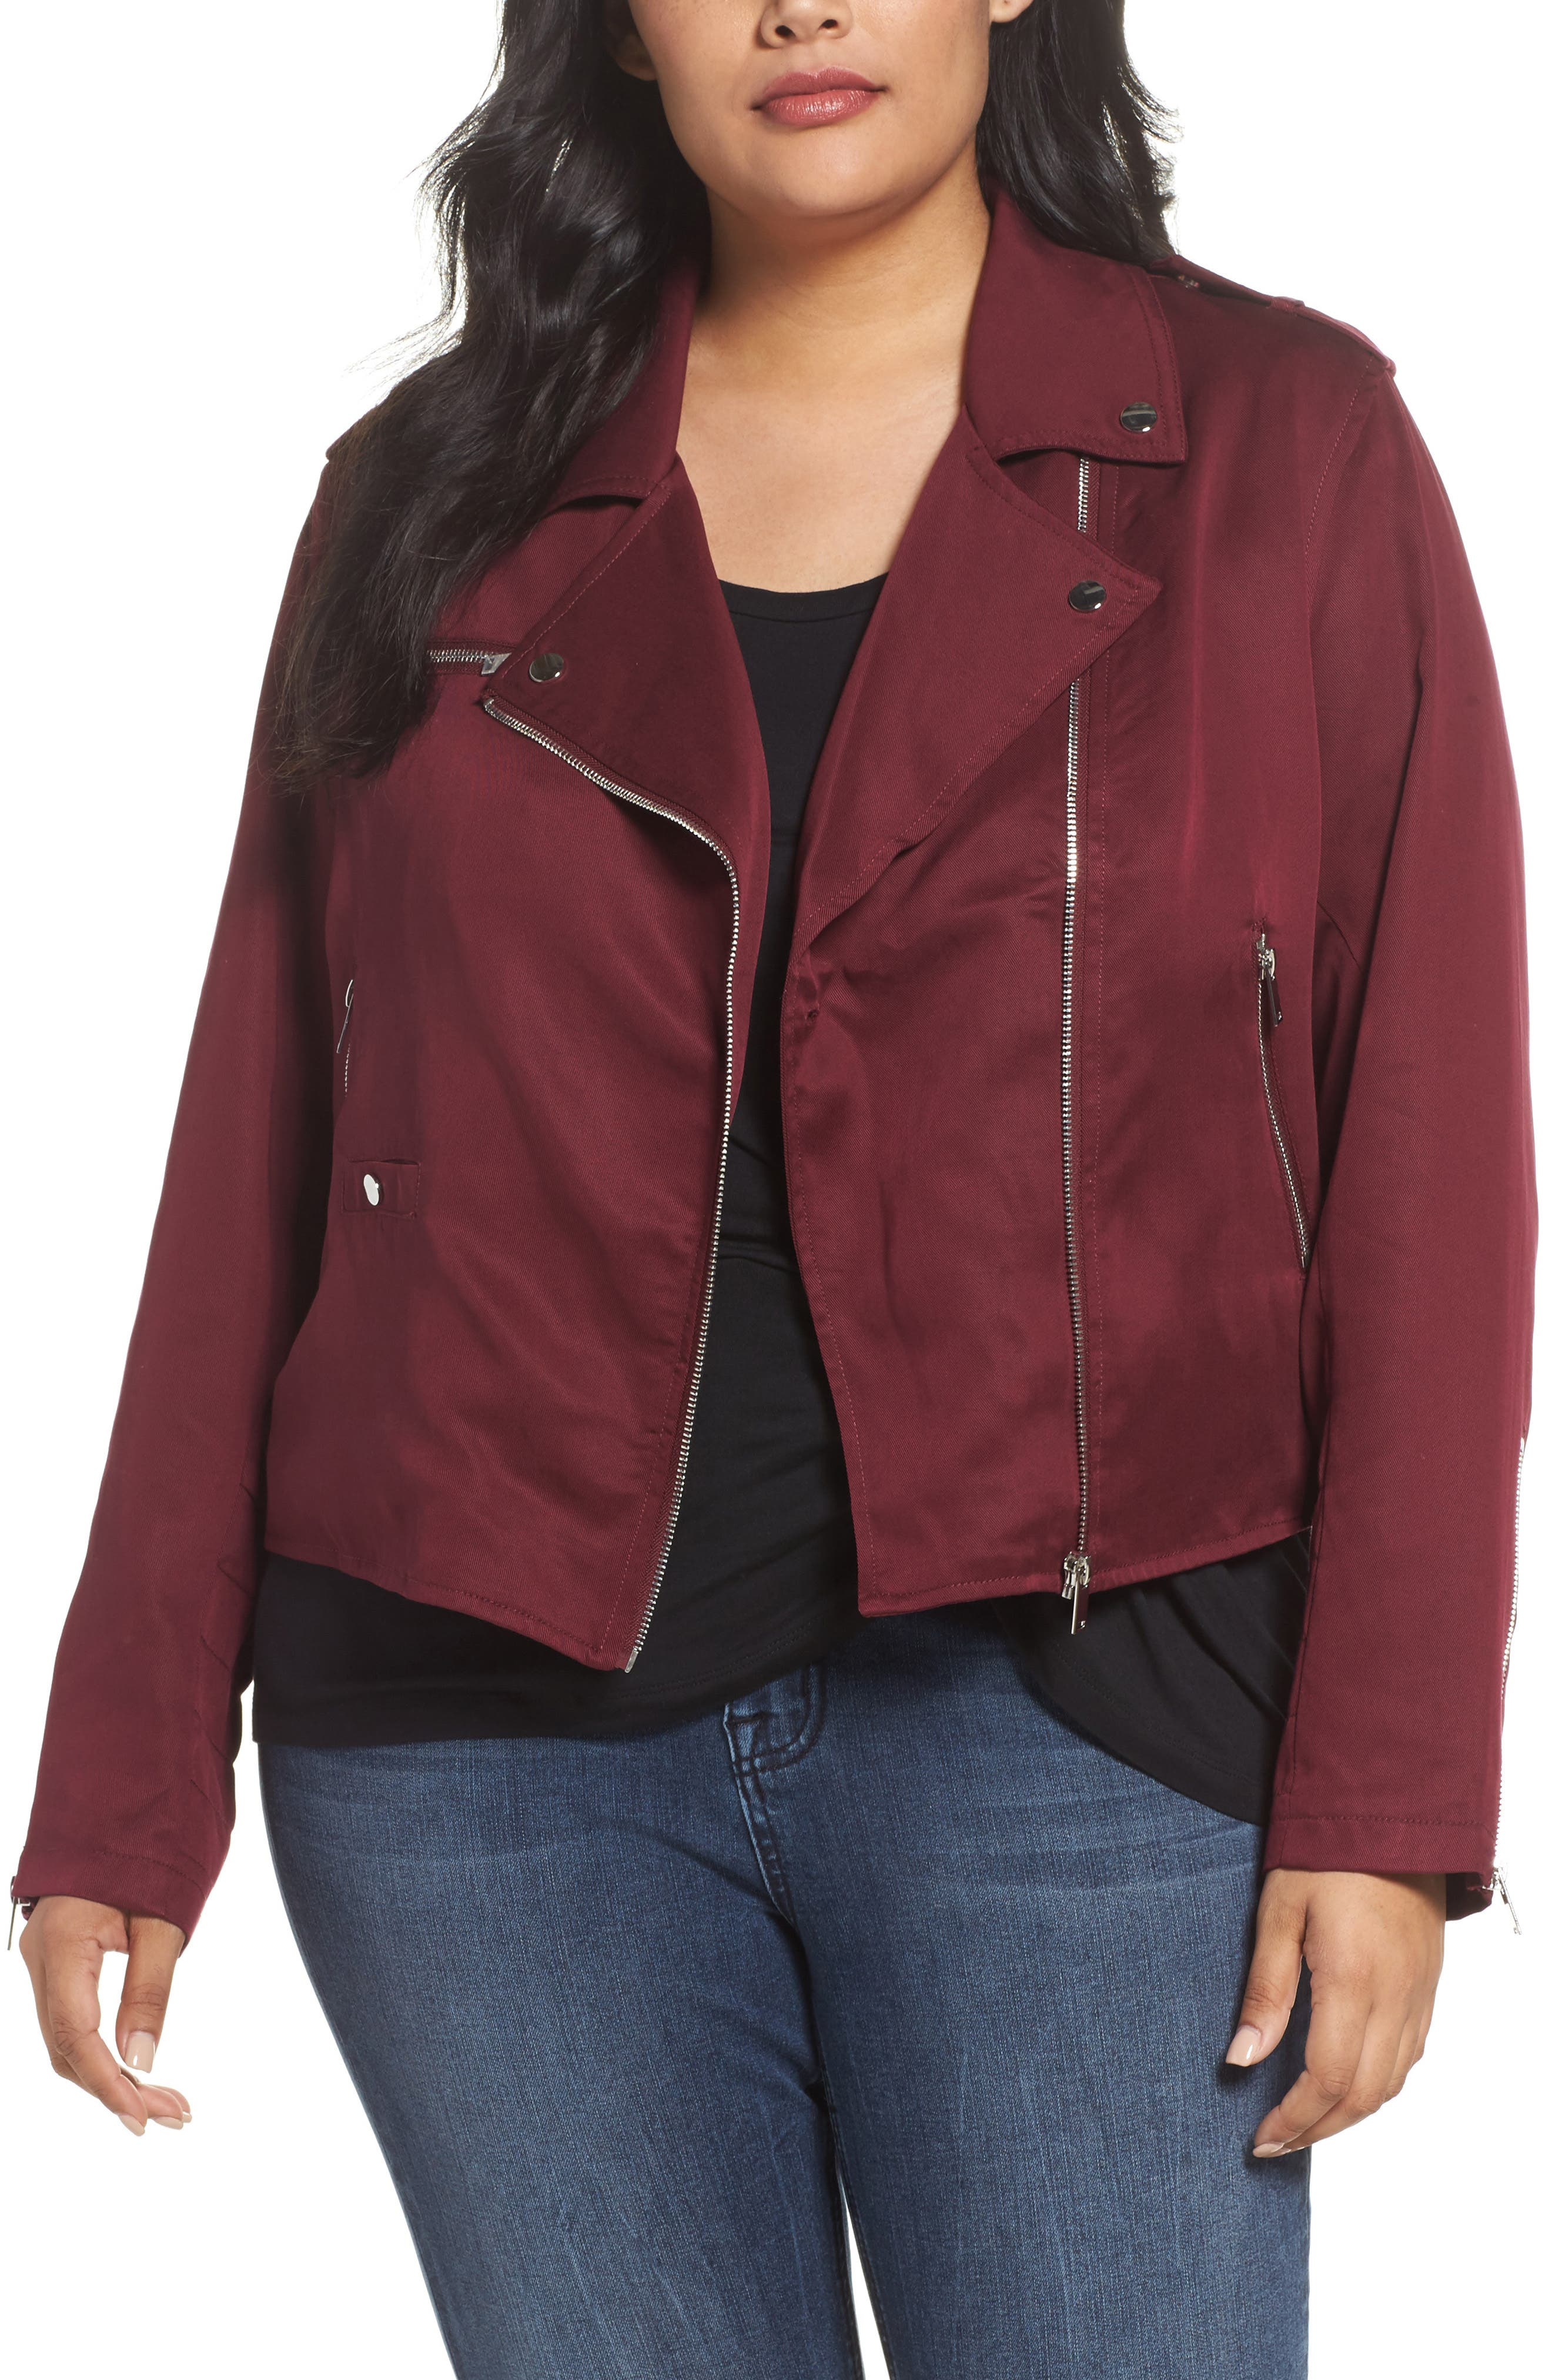 Alternate Image 1 Selected - REBEL WILSON X ANGELS Lyocell Moto Jacket (Plus Size)